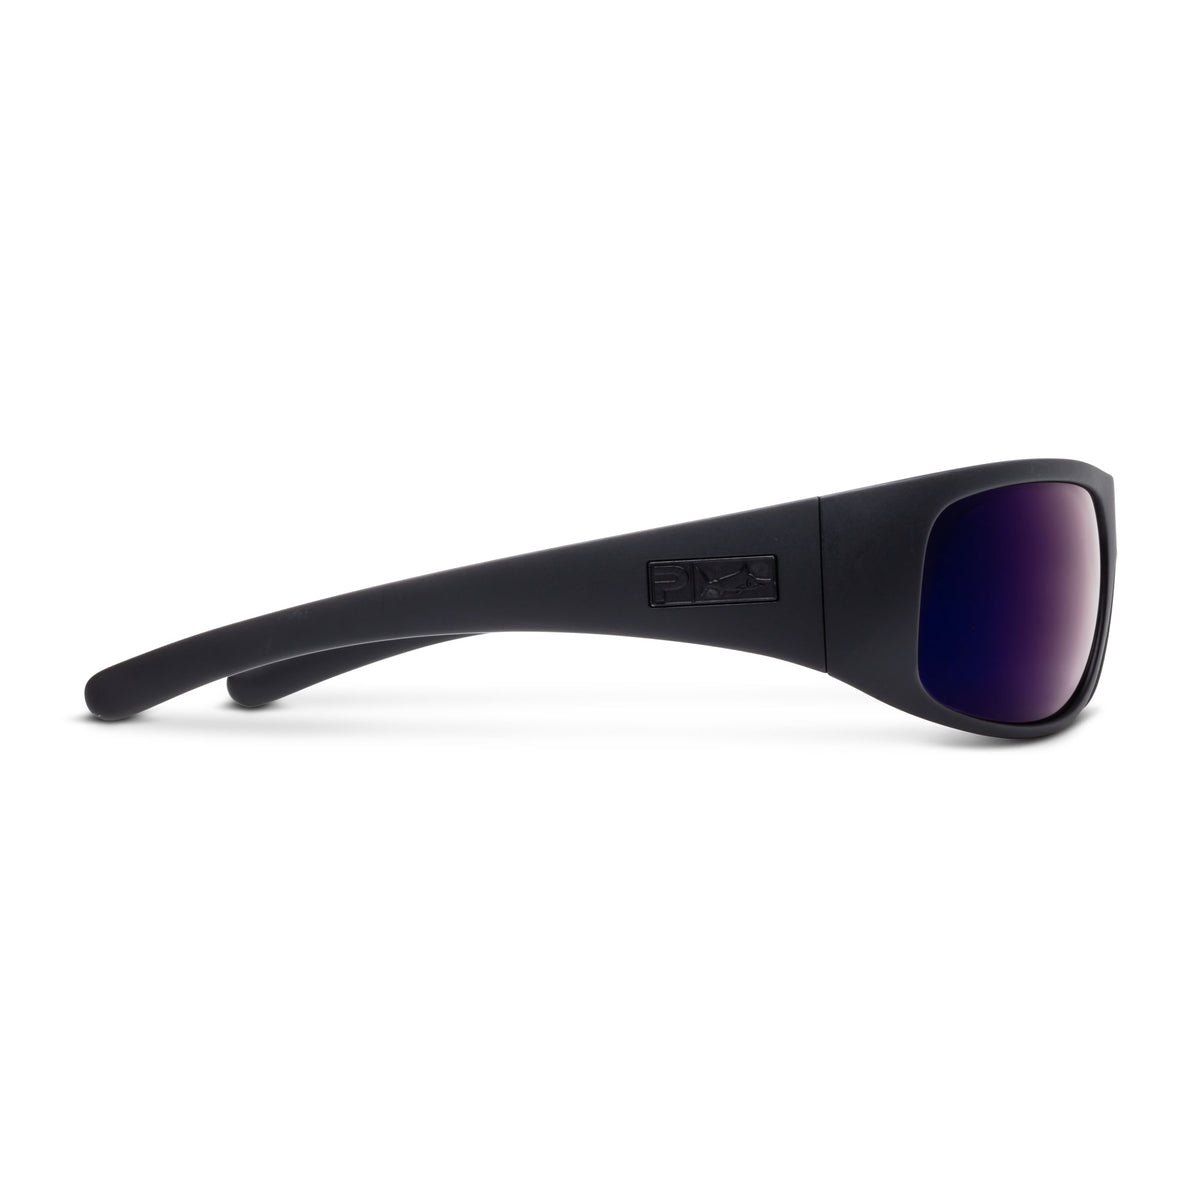 Legend - Polarized Polycarbonate Lens Big Image - 3